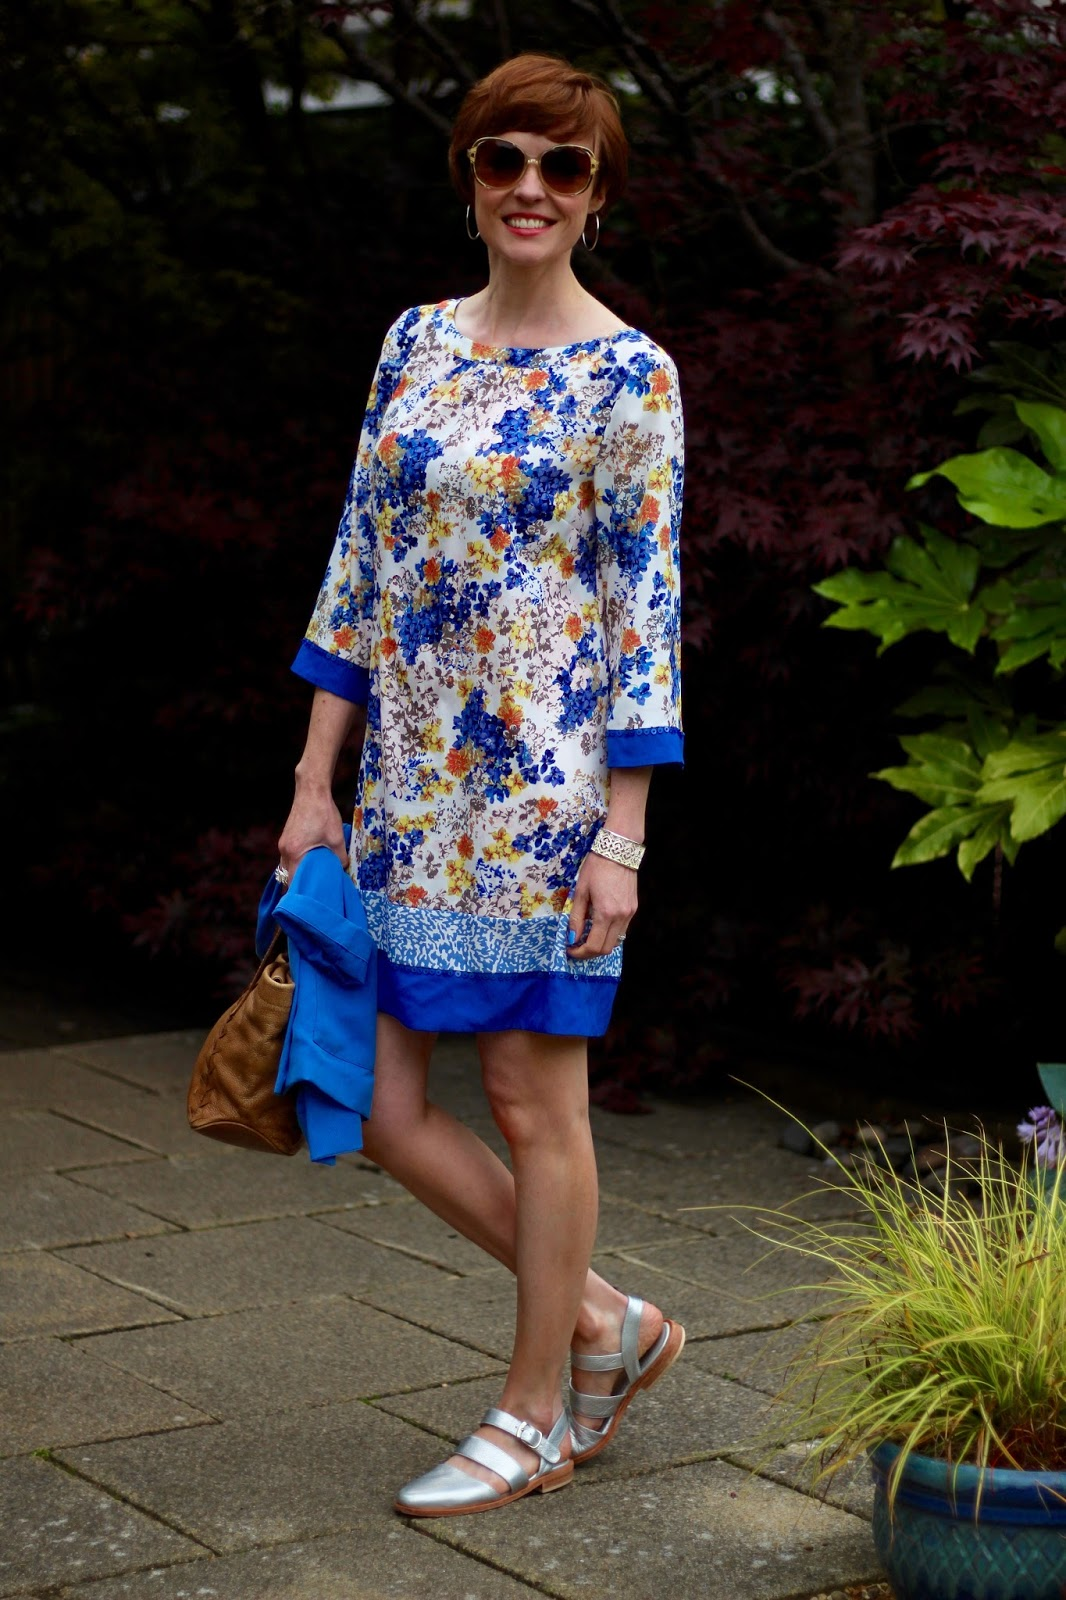 Fake  Fabulous |Wardrobe malfunction, clinging fabrics | Blue, yellow and orange floral dress & silver sandals